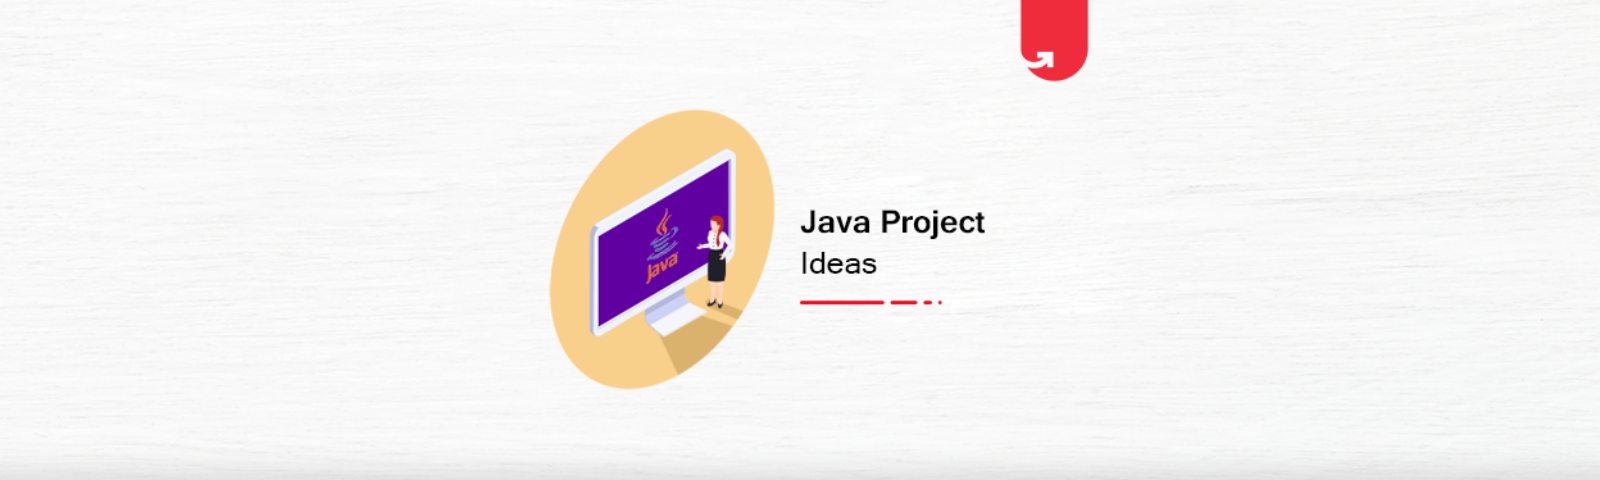 17 Interesting Java Project Ideas Topics For Beginners 2020 Upgrad Blog